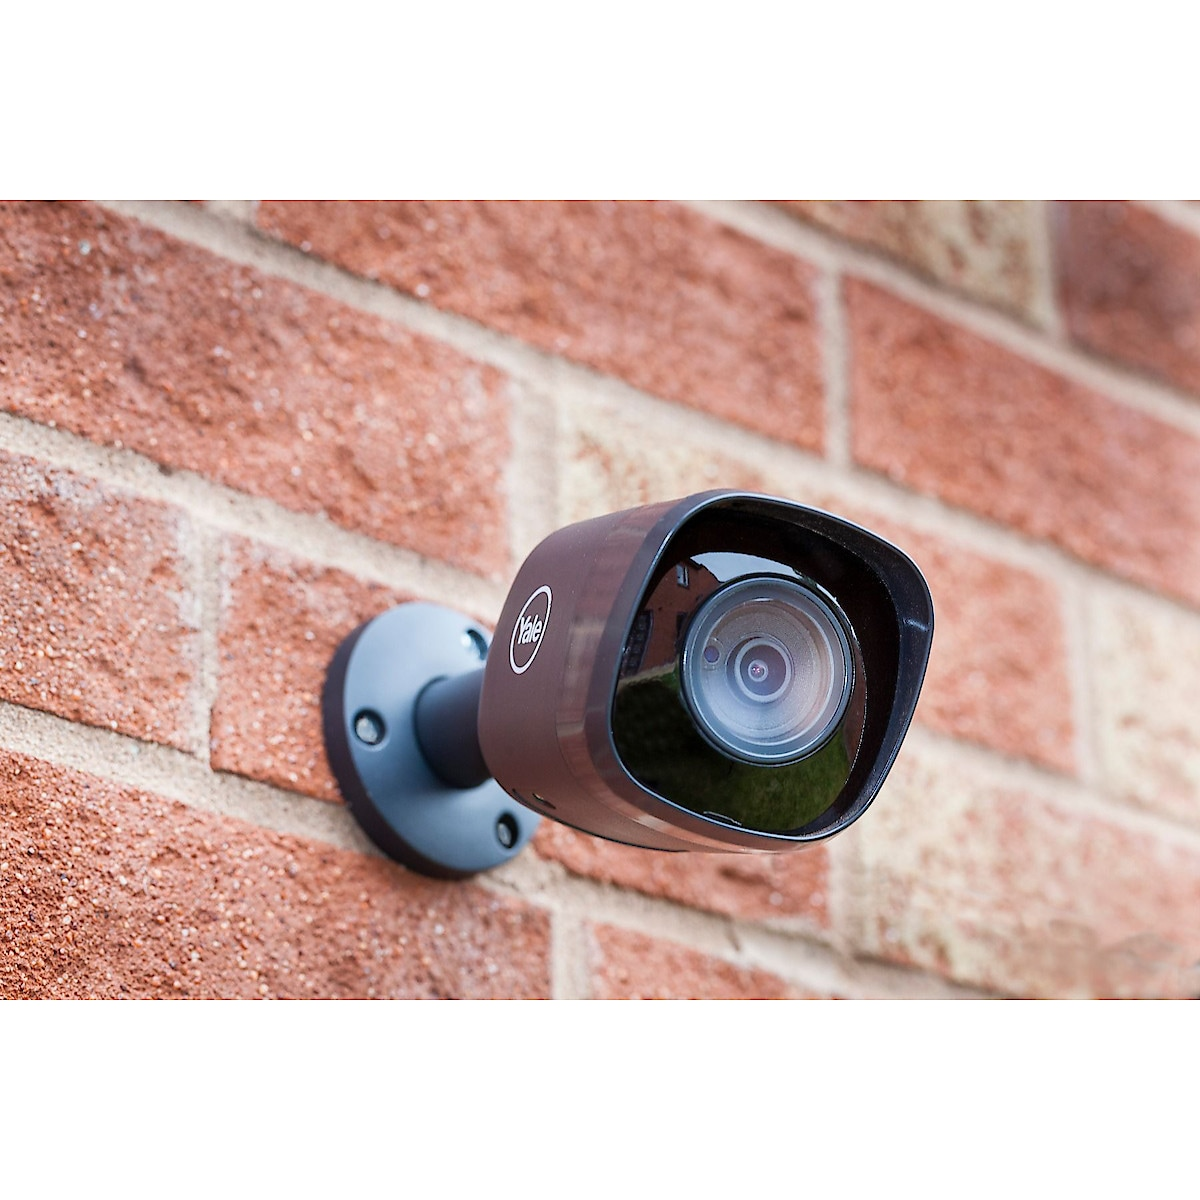 Yale HD1080 Outdoor WiFi Security Camera